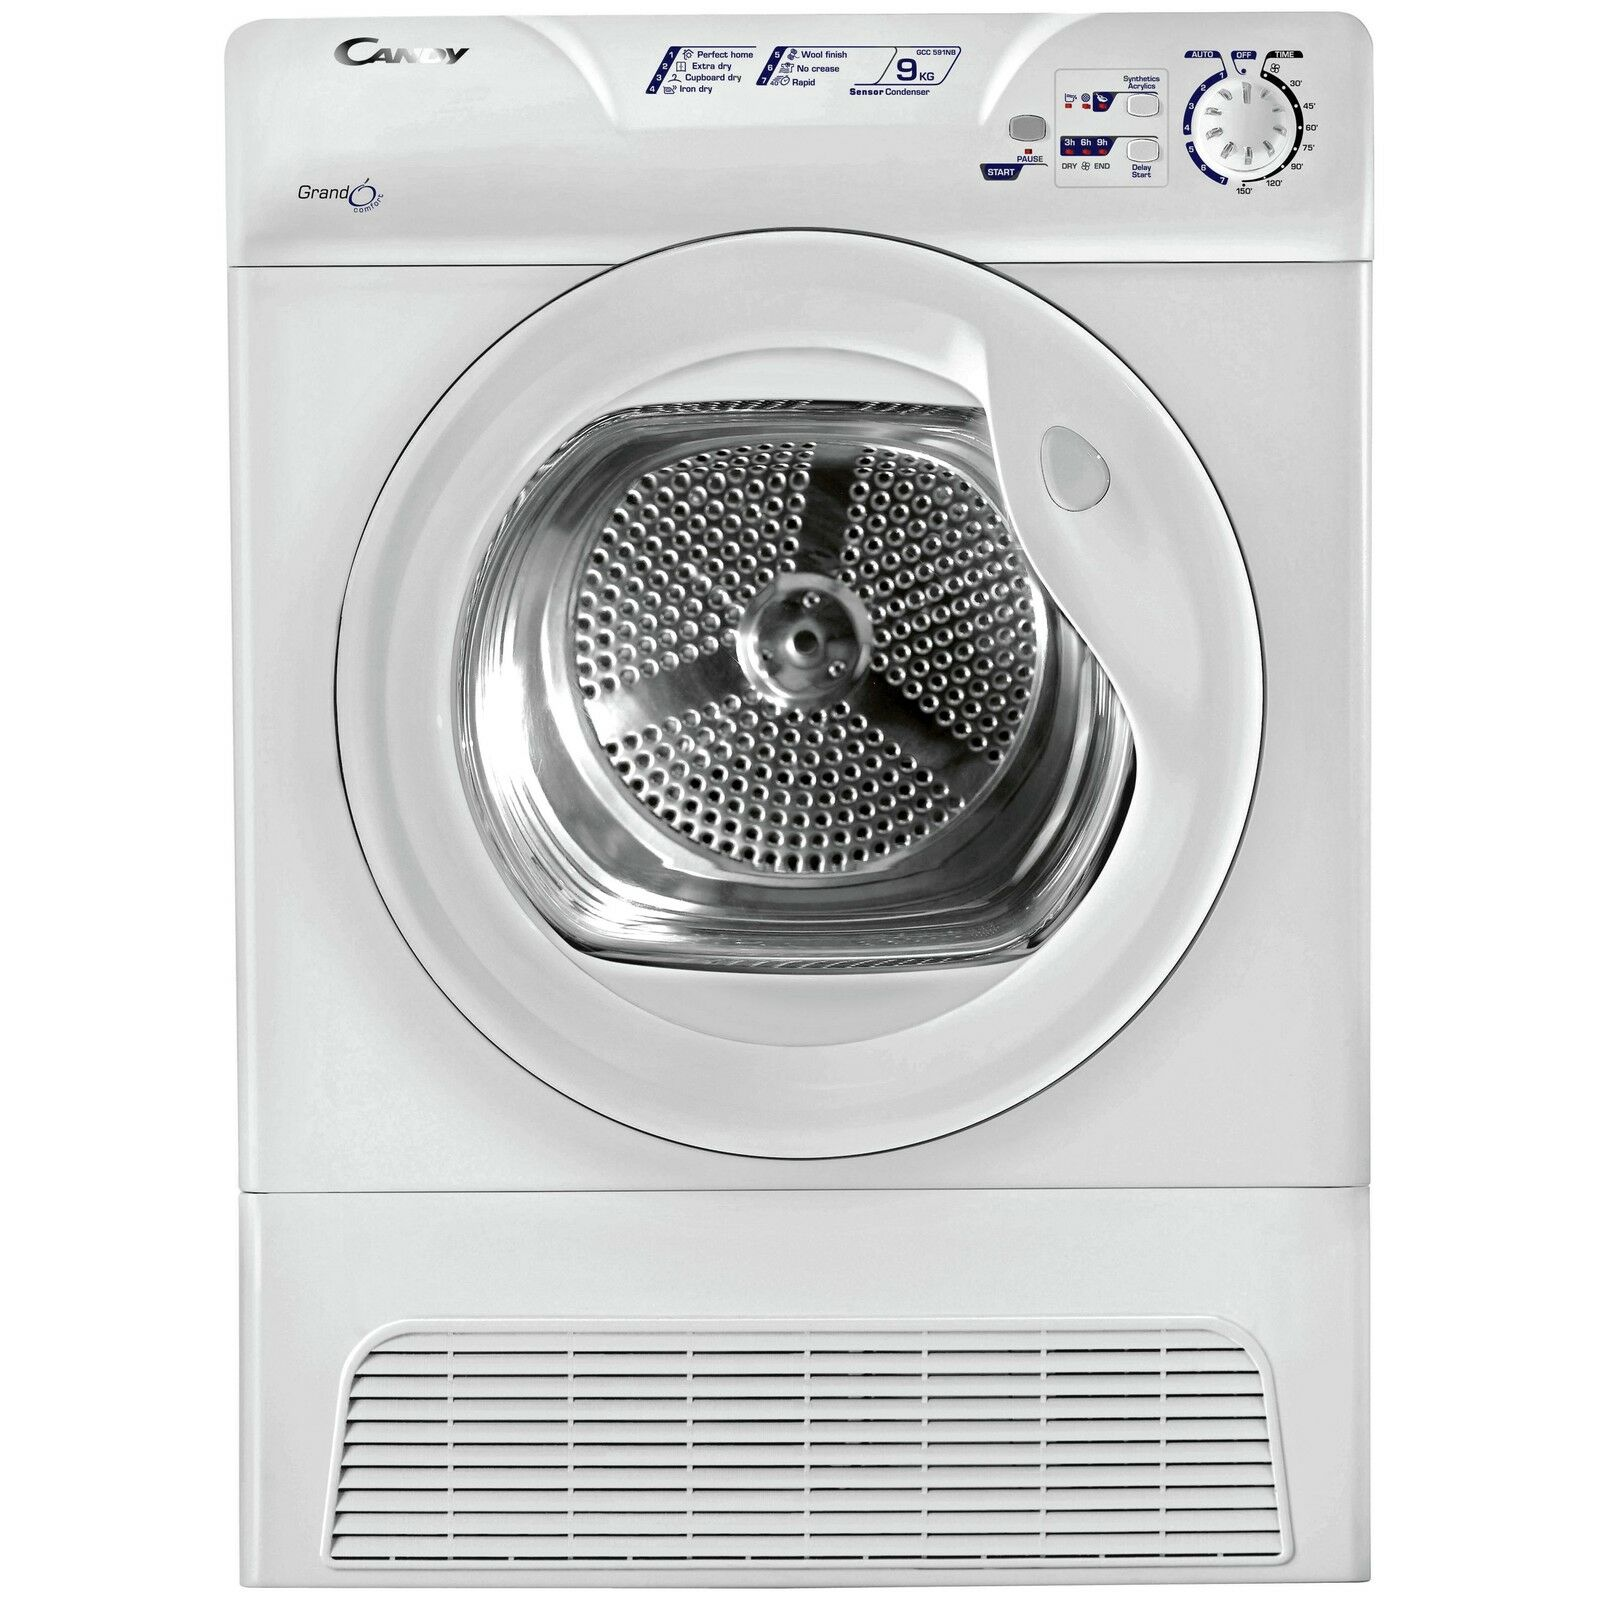 Candy gcc591nb condenser tumble dryer 9kg white from the argos shop on ebay - Tumble dryer for small space pict ...